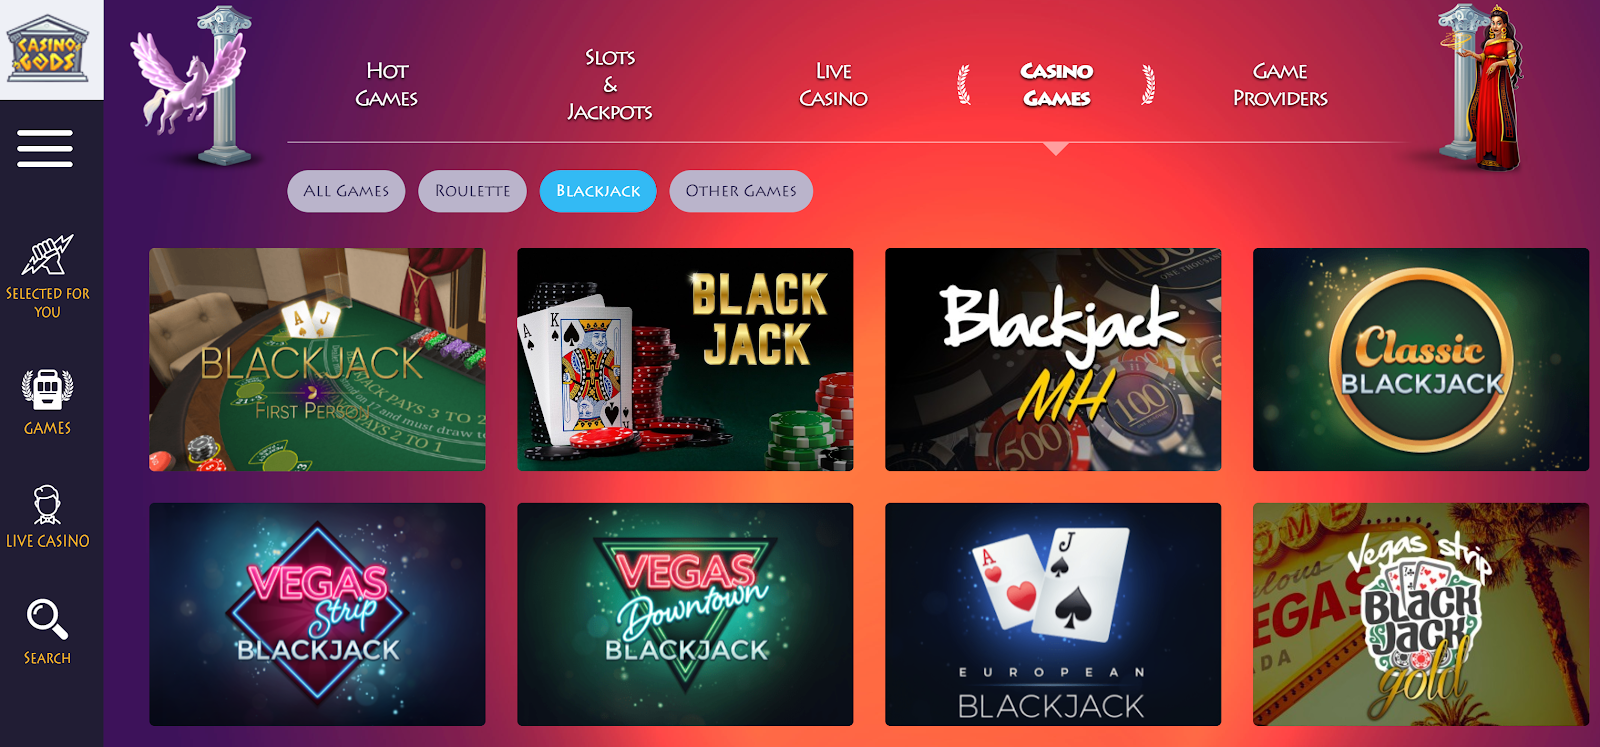 Casino Gods has loads of excellent blackjack games you can play